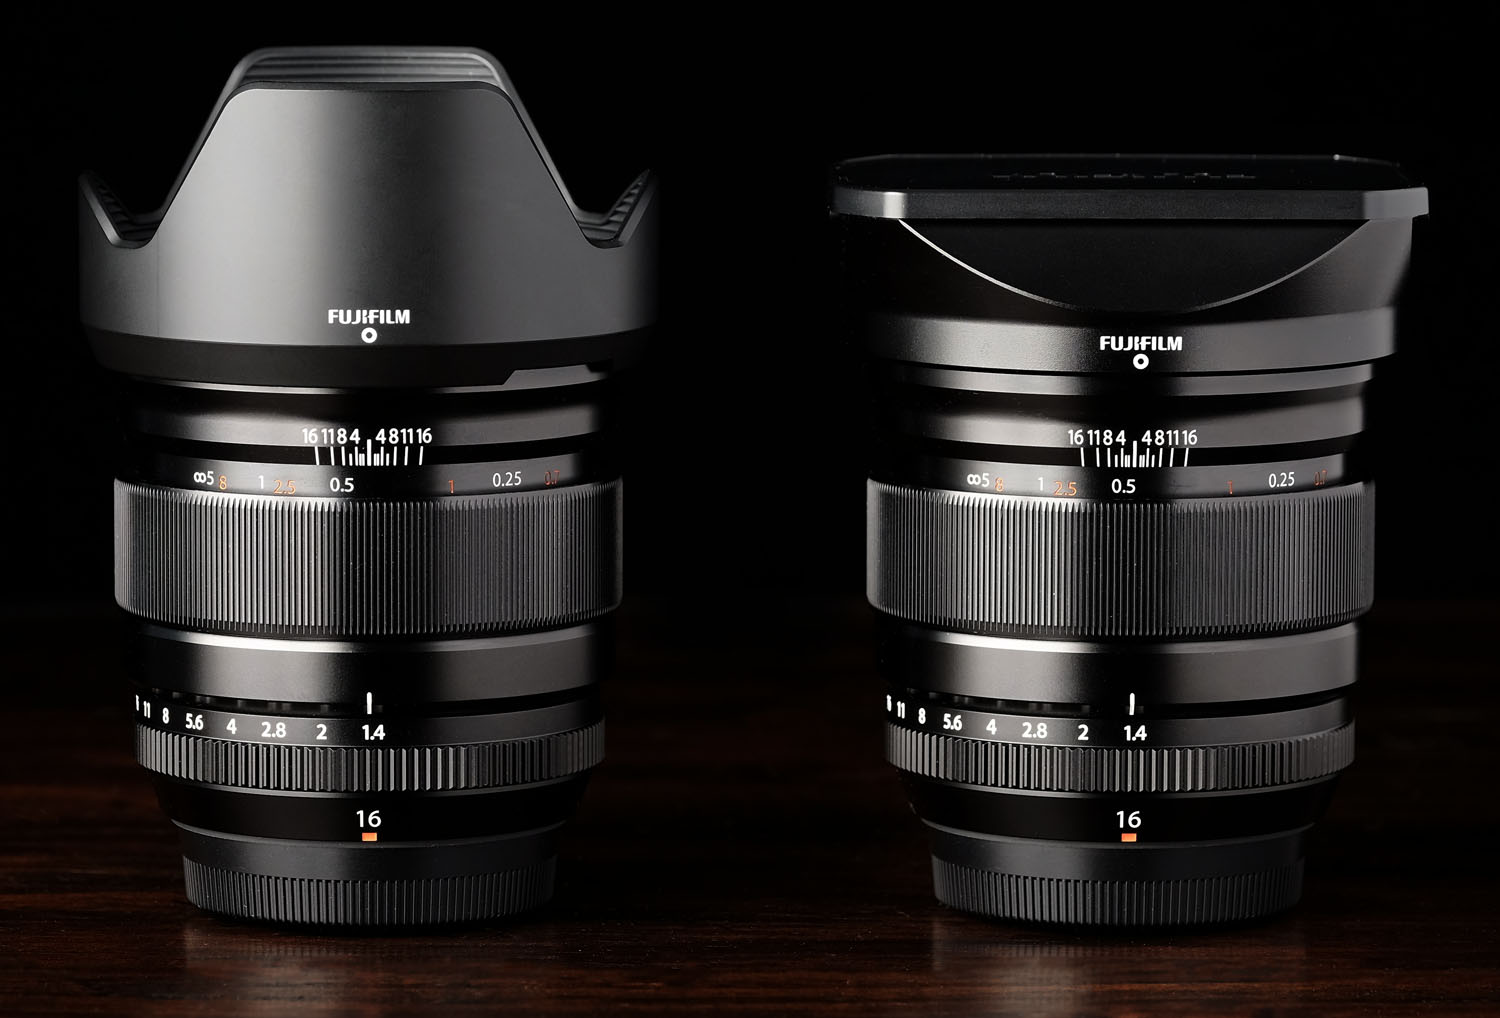 No, I don't have two of these lenses. Just the power of Photoshop